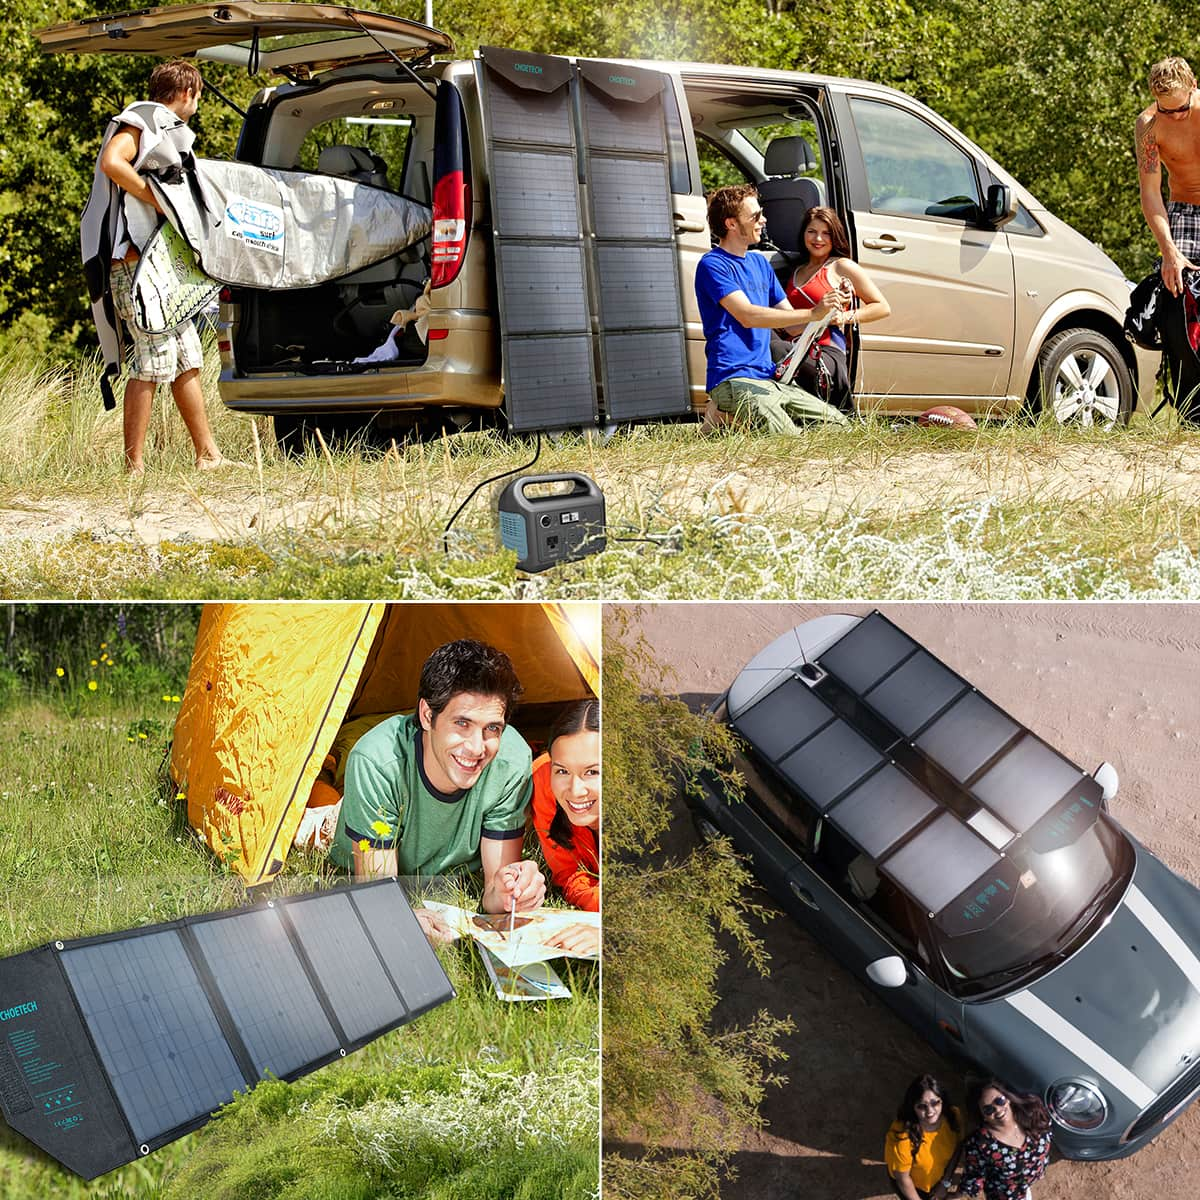 Choetech Portable Solar Panel giveaway: Don't be without power on your next outdoor adventure